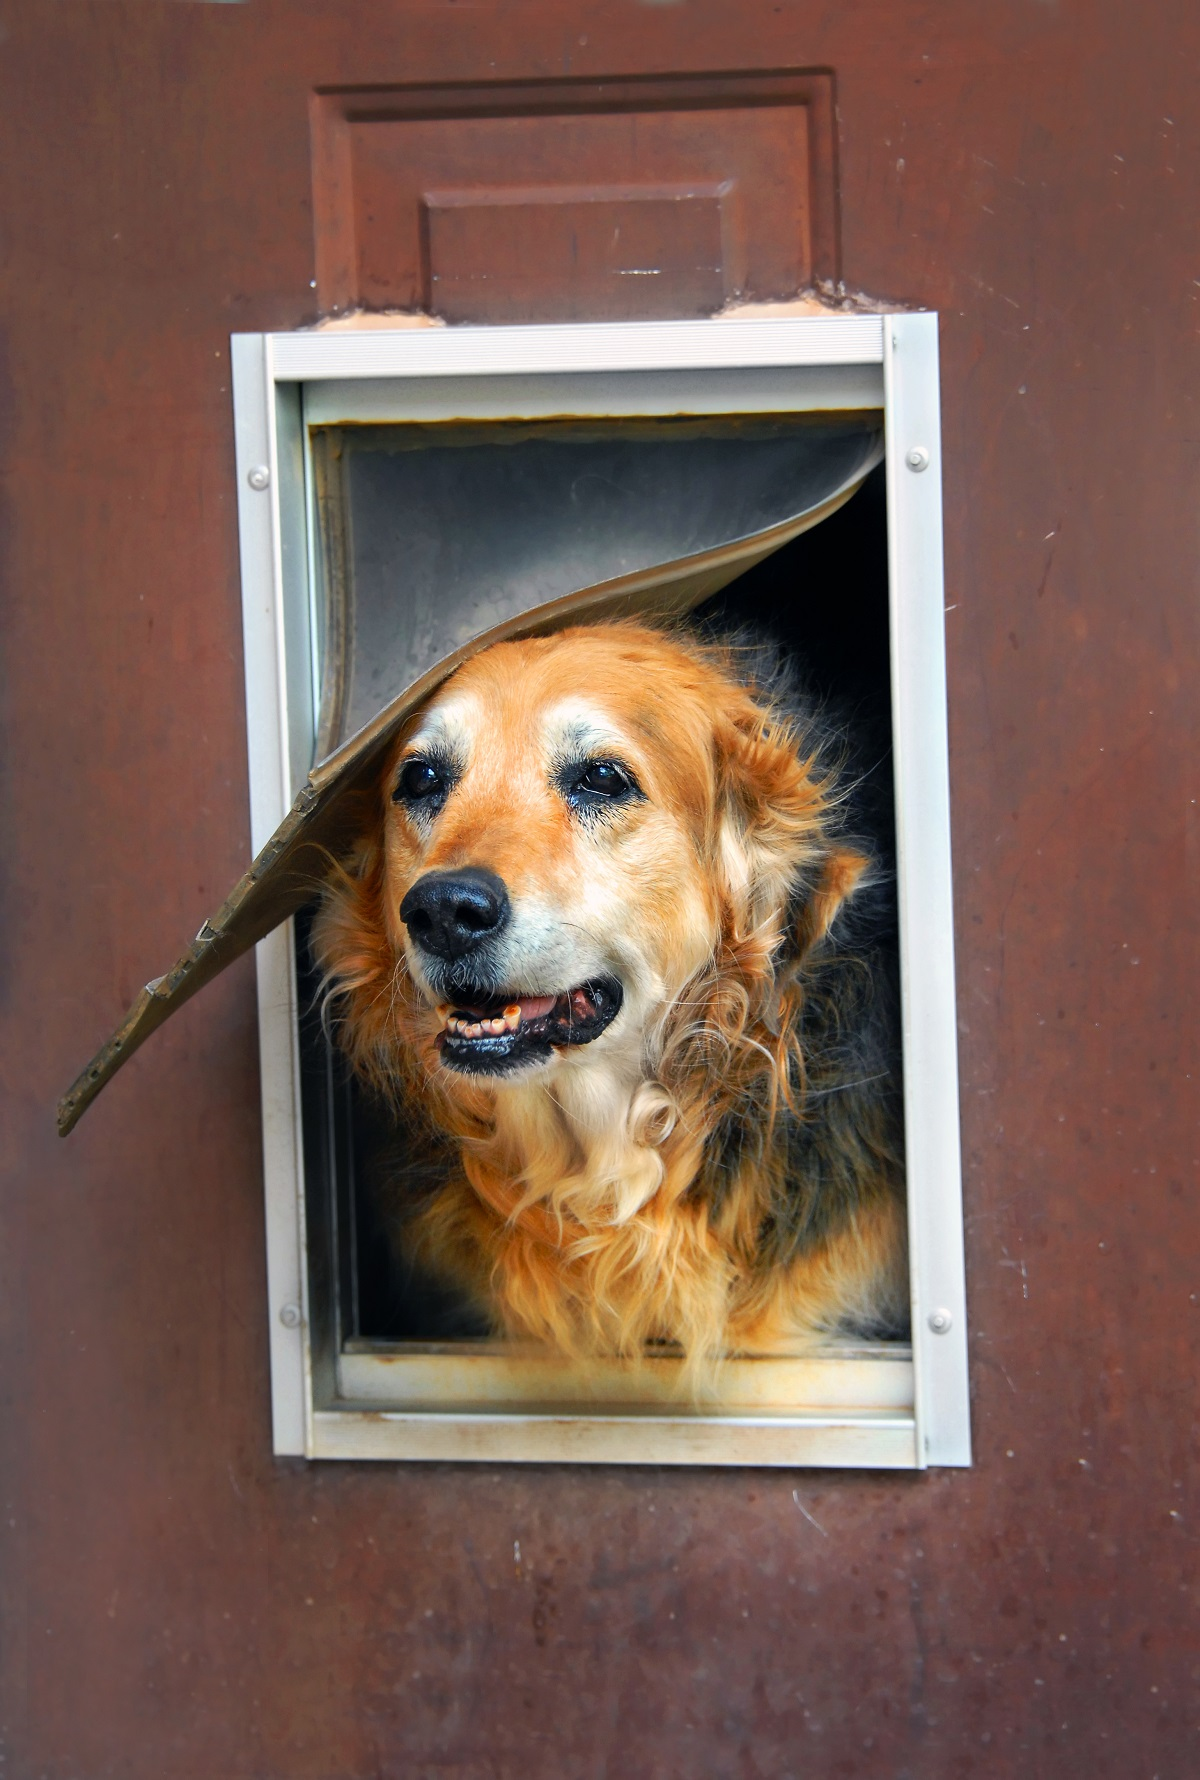 Old dog looking out dog door